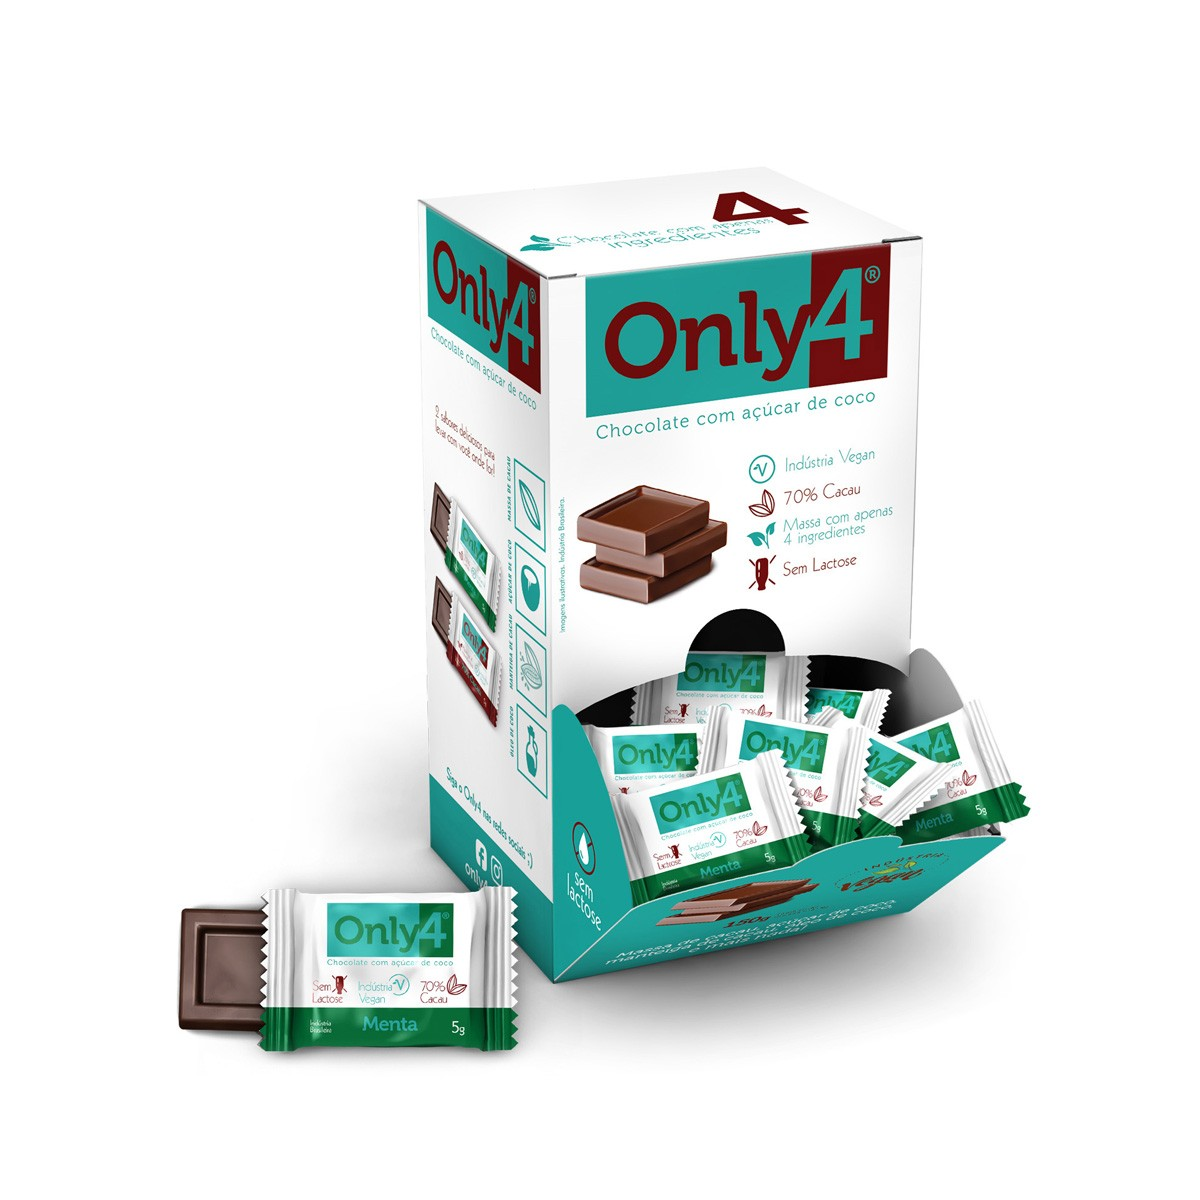 Chocolate 70% Cacau Sabor Menta Display com 30 un. de 5g - Only4